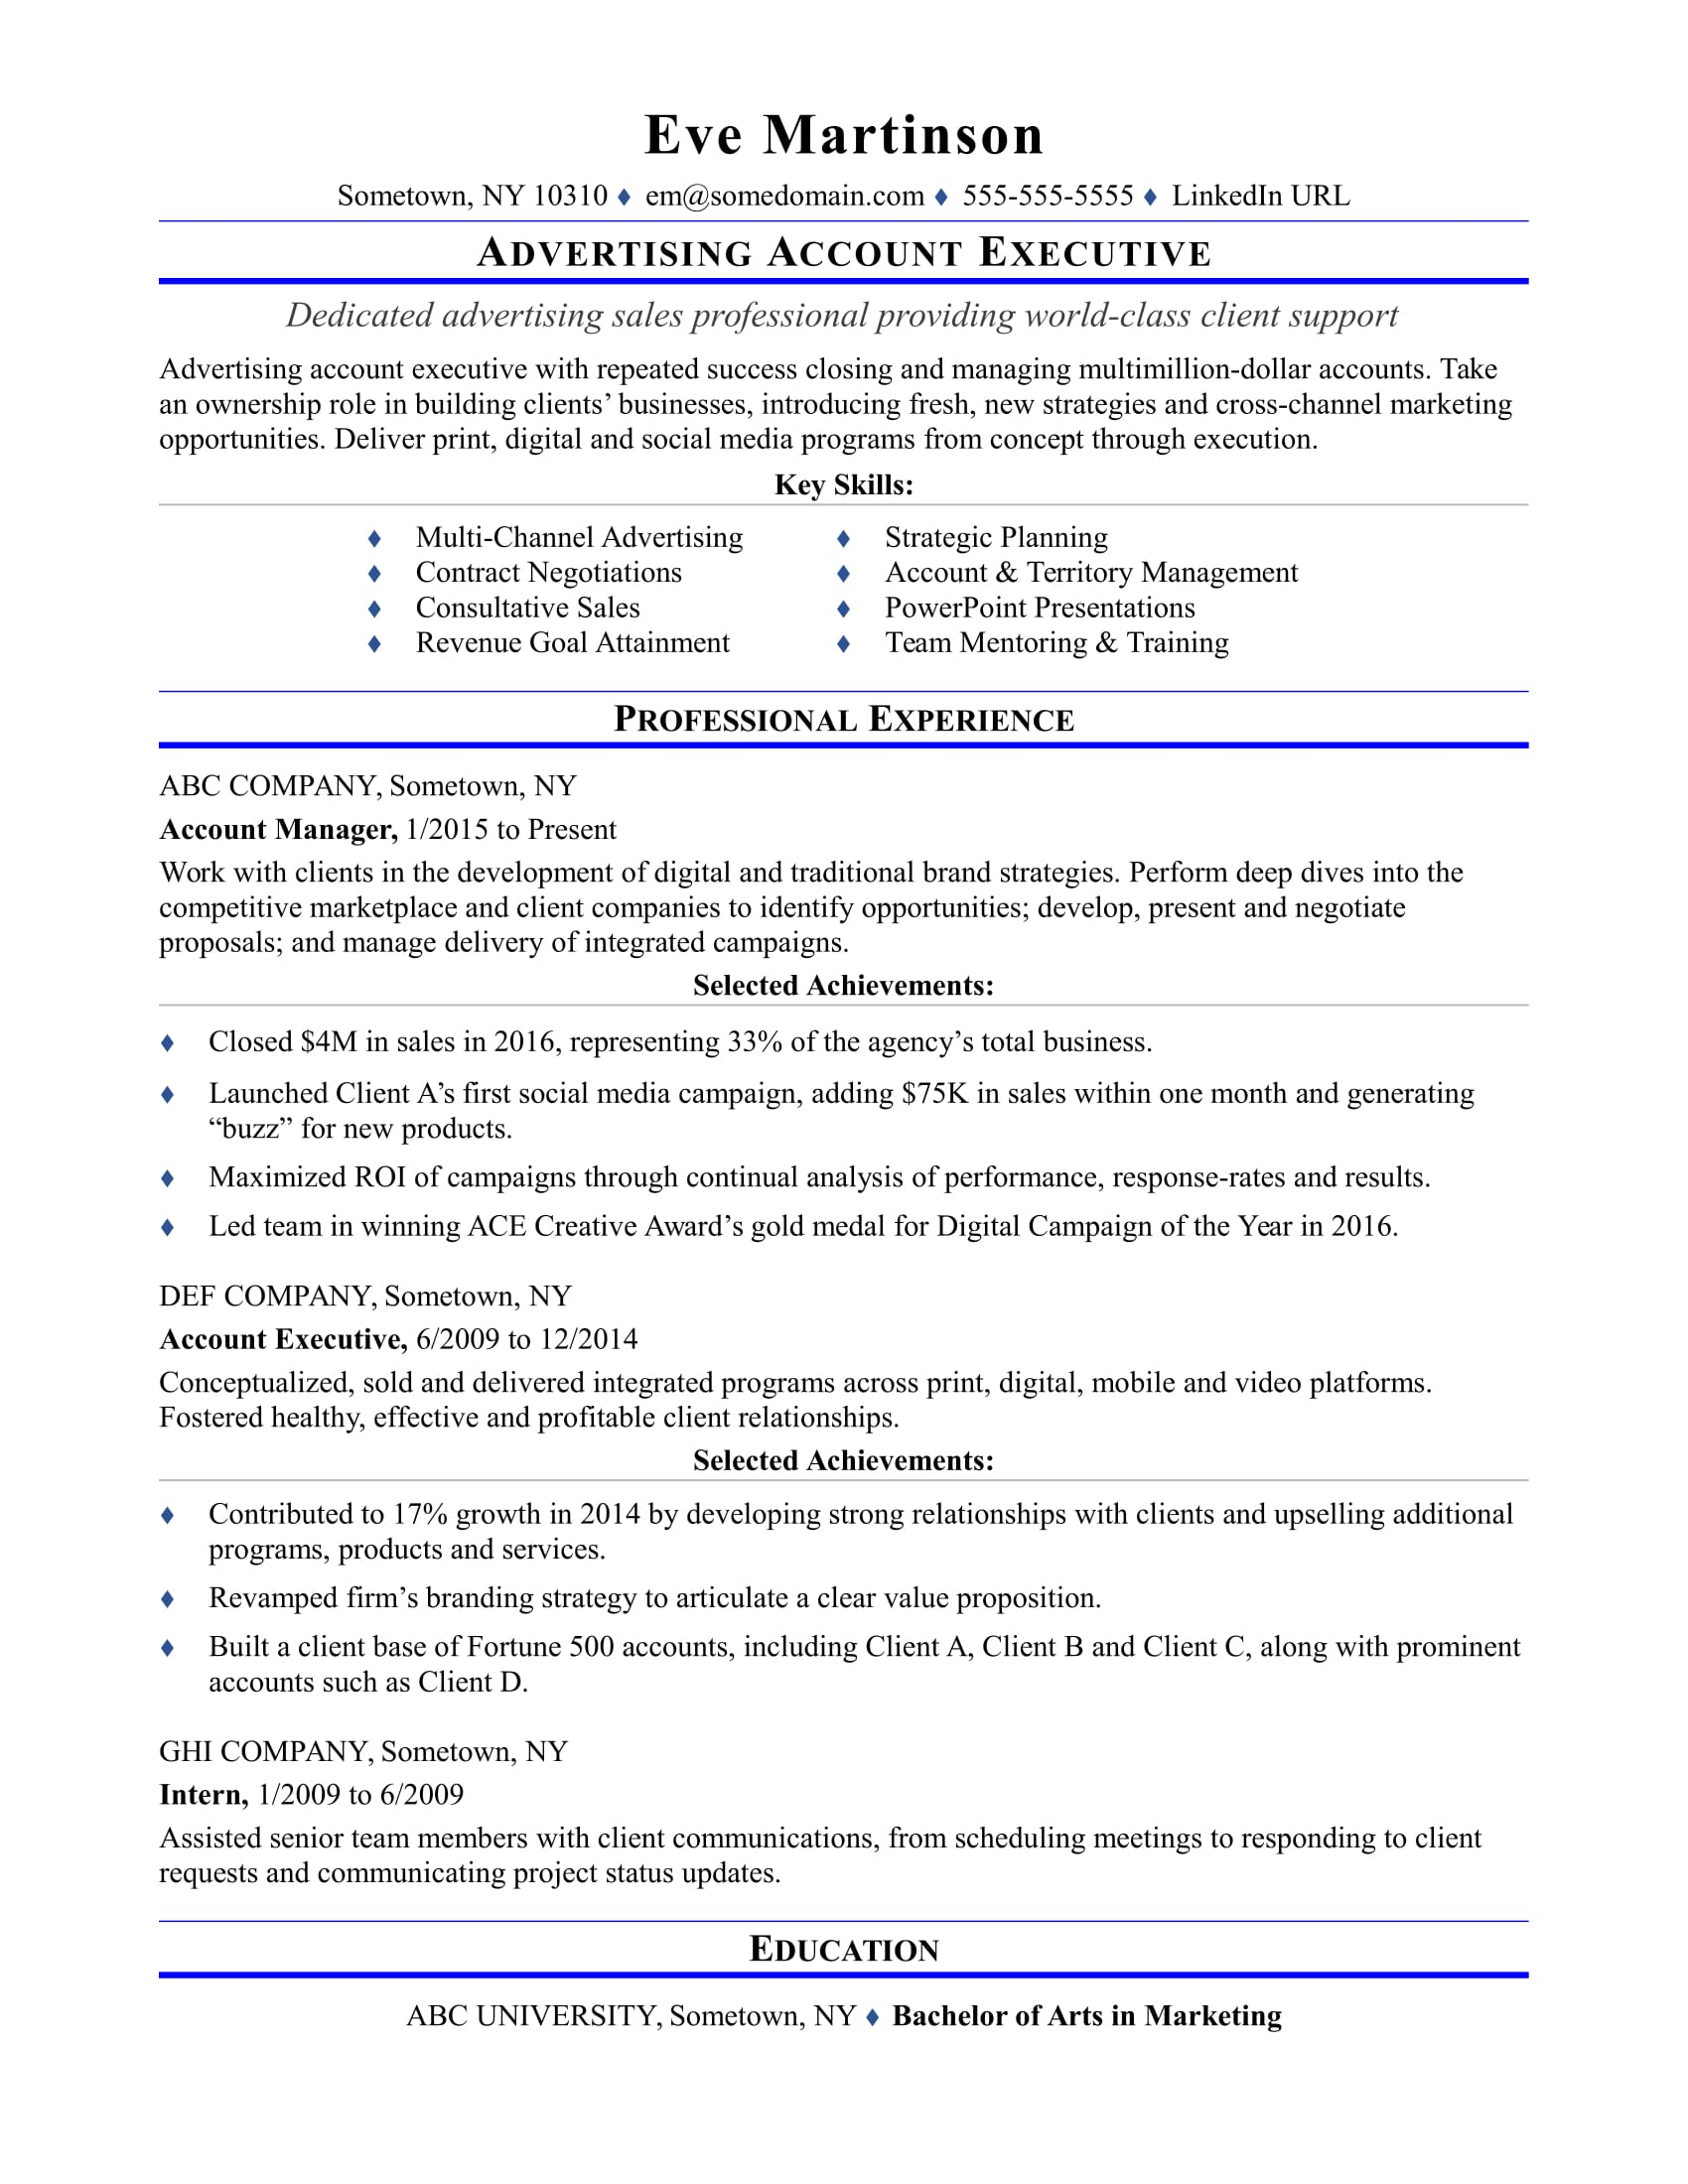 sample resume for an advertising account executive monster manager example fresher Resume Account Manager Resume Example